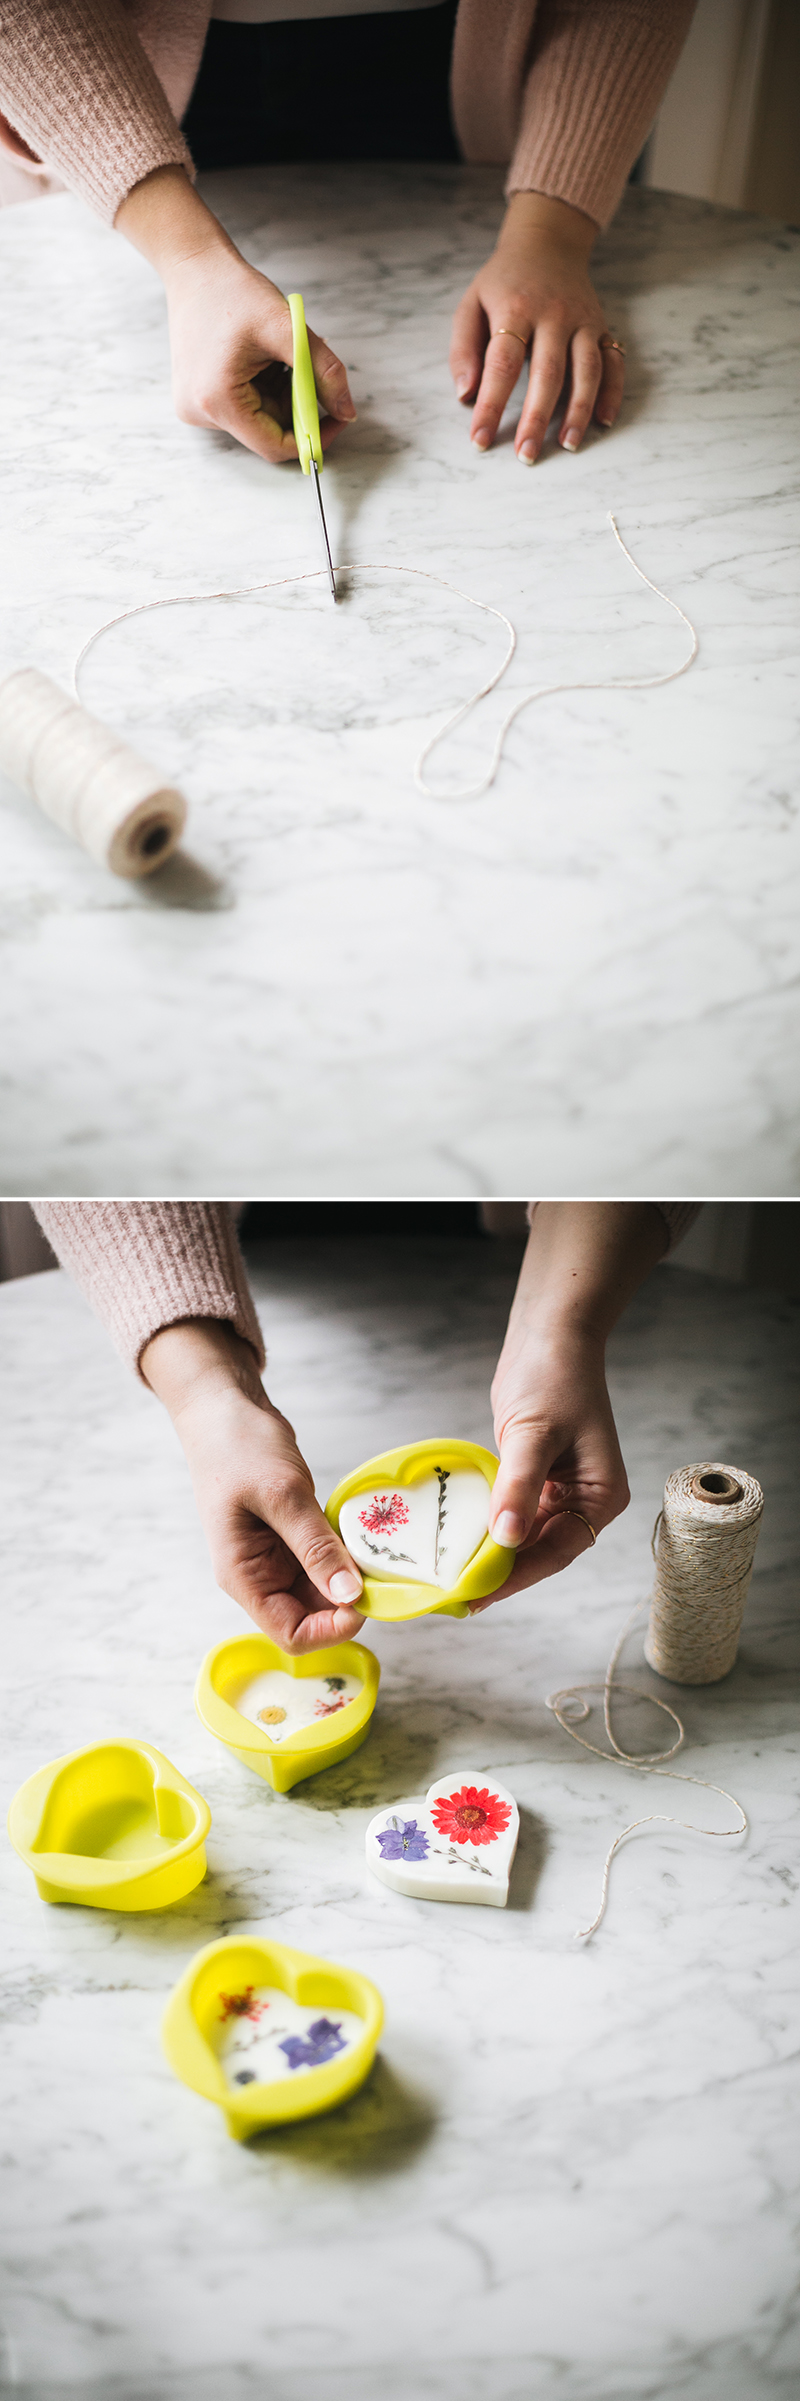 jojotastic - DIY essential oil + soy wax sachets for your